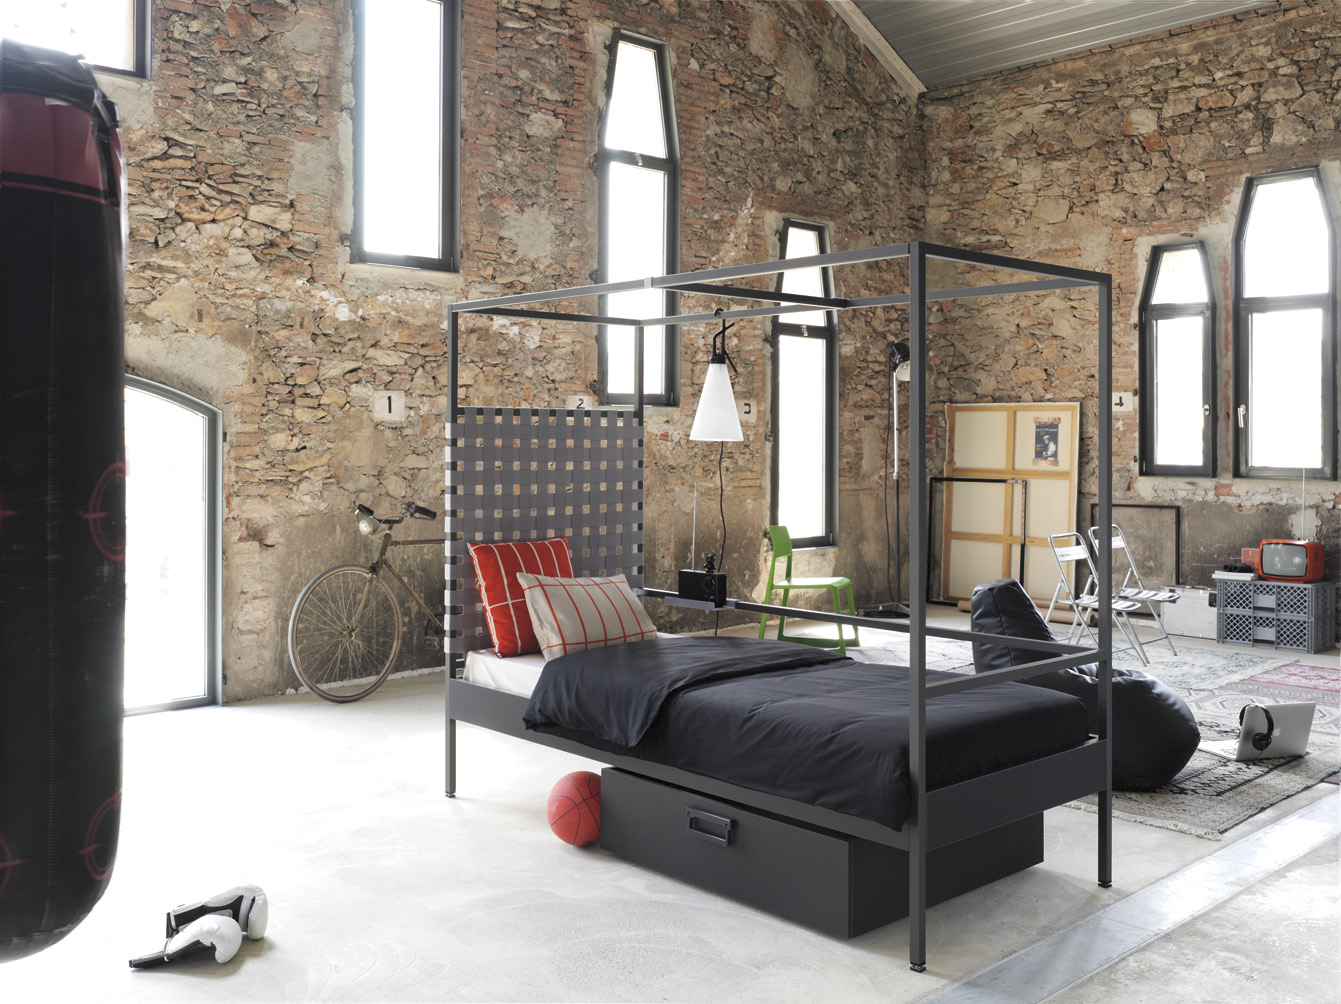 Un diseño industrial con Nook Bed